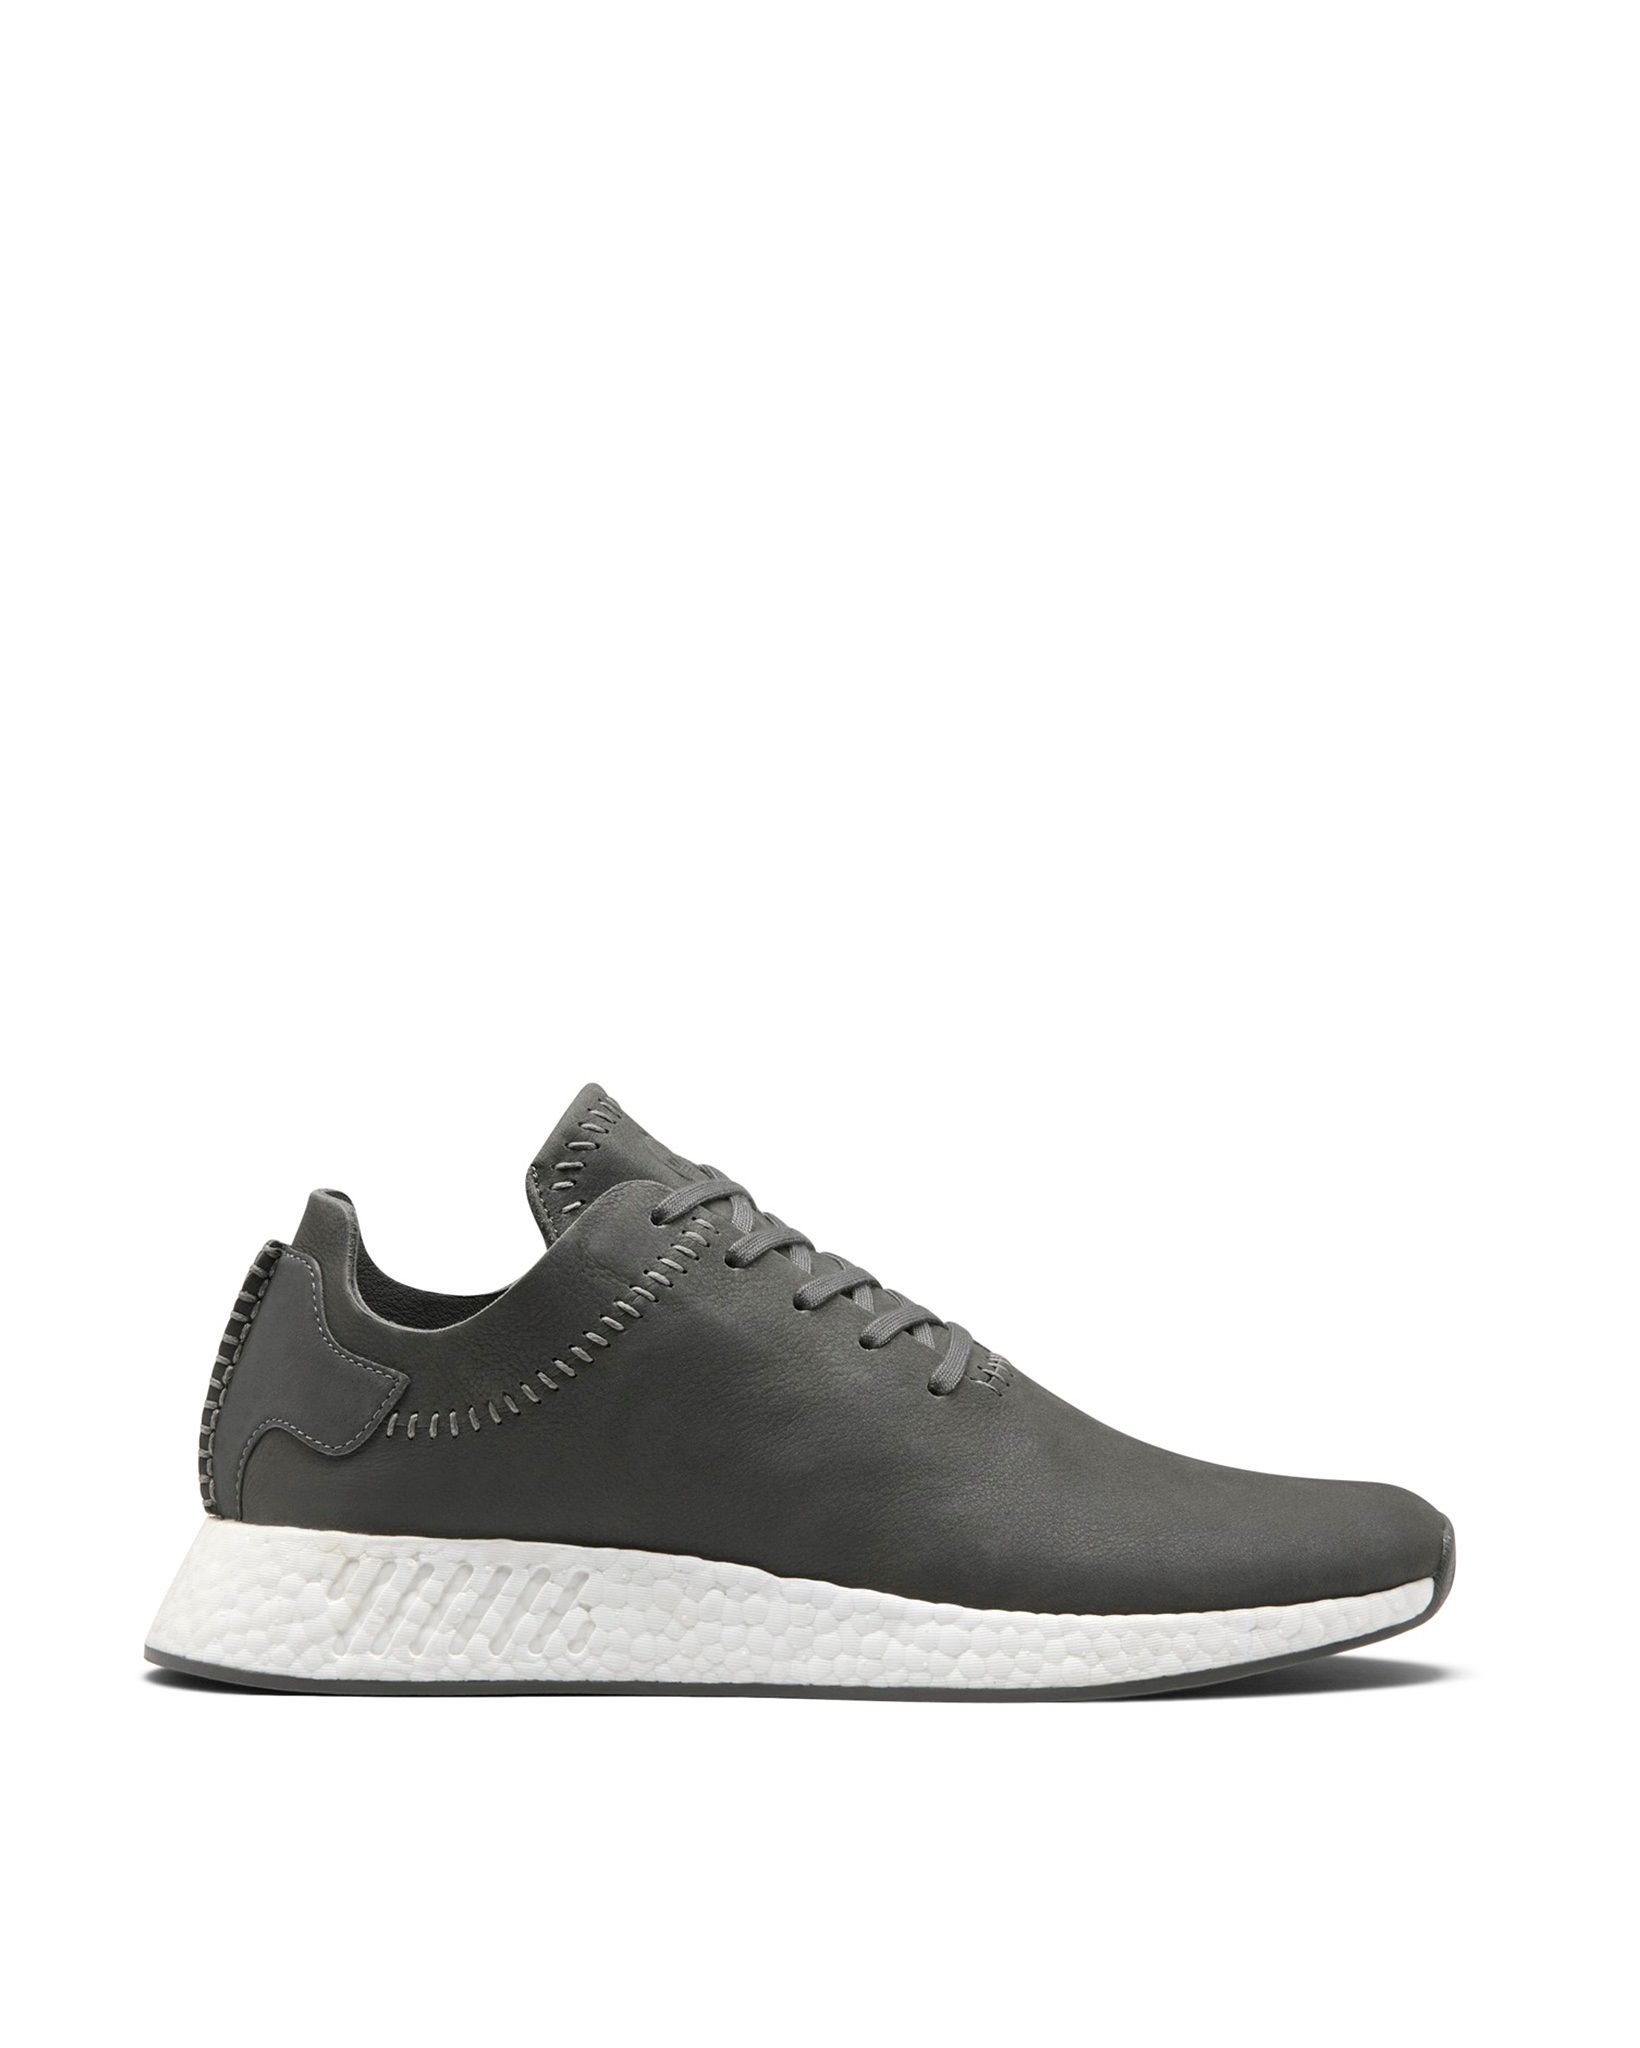 479890820 wings + horns x adidas Originals NMD R2